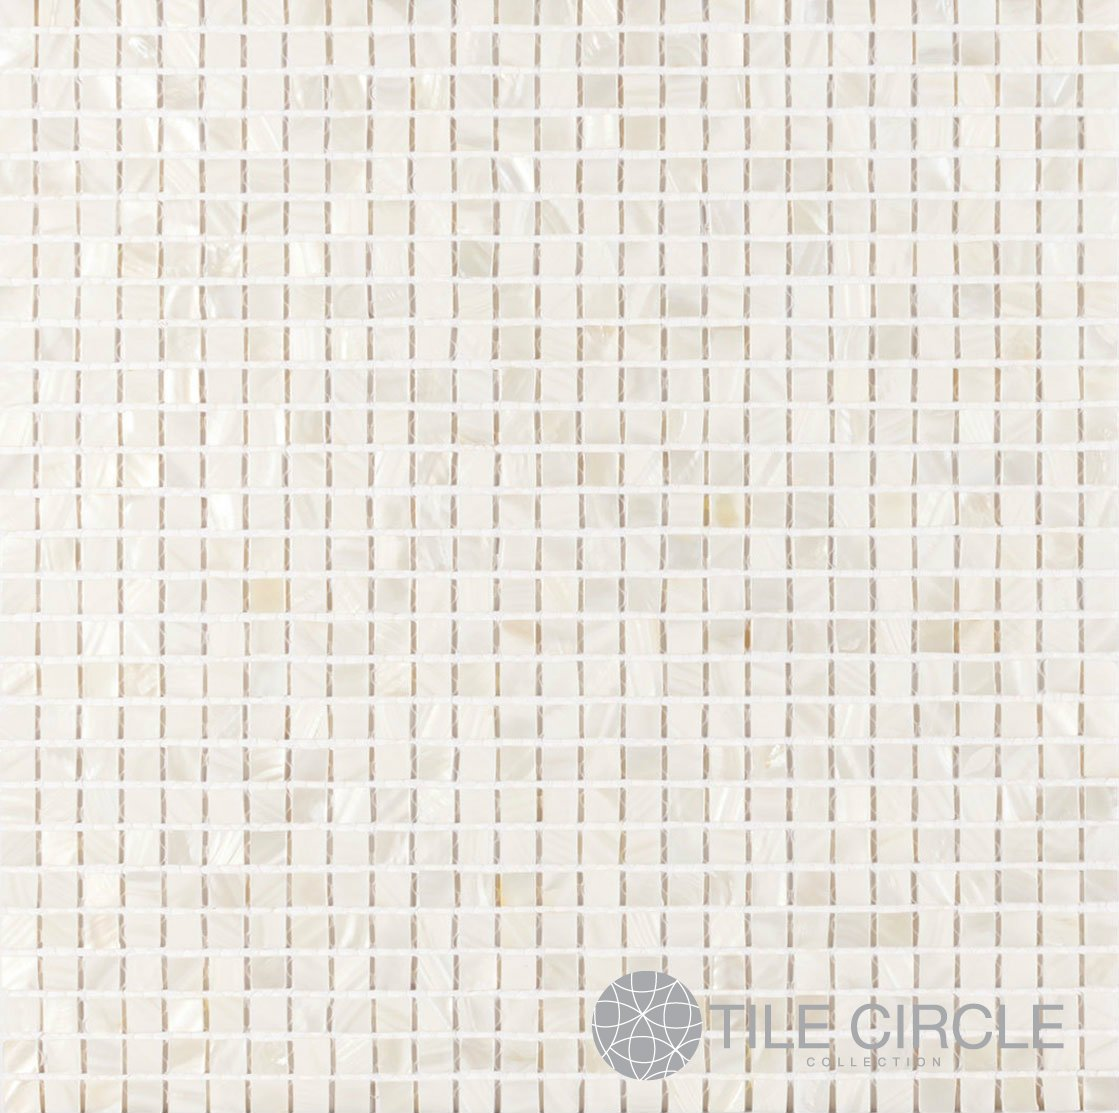 Mother of Pearl Shell Tile White 3/8'' x 3/8'' Micromosaic Squares (On a 12'' X 12'' Mesh) for Backsplash and Bathroom Walls and Floors